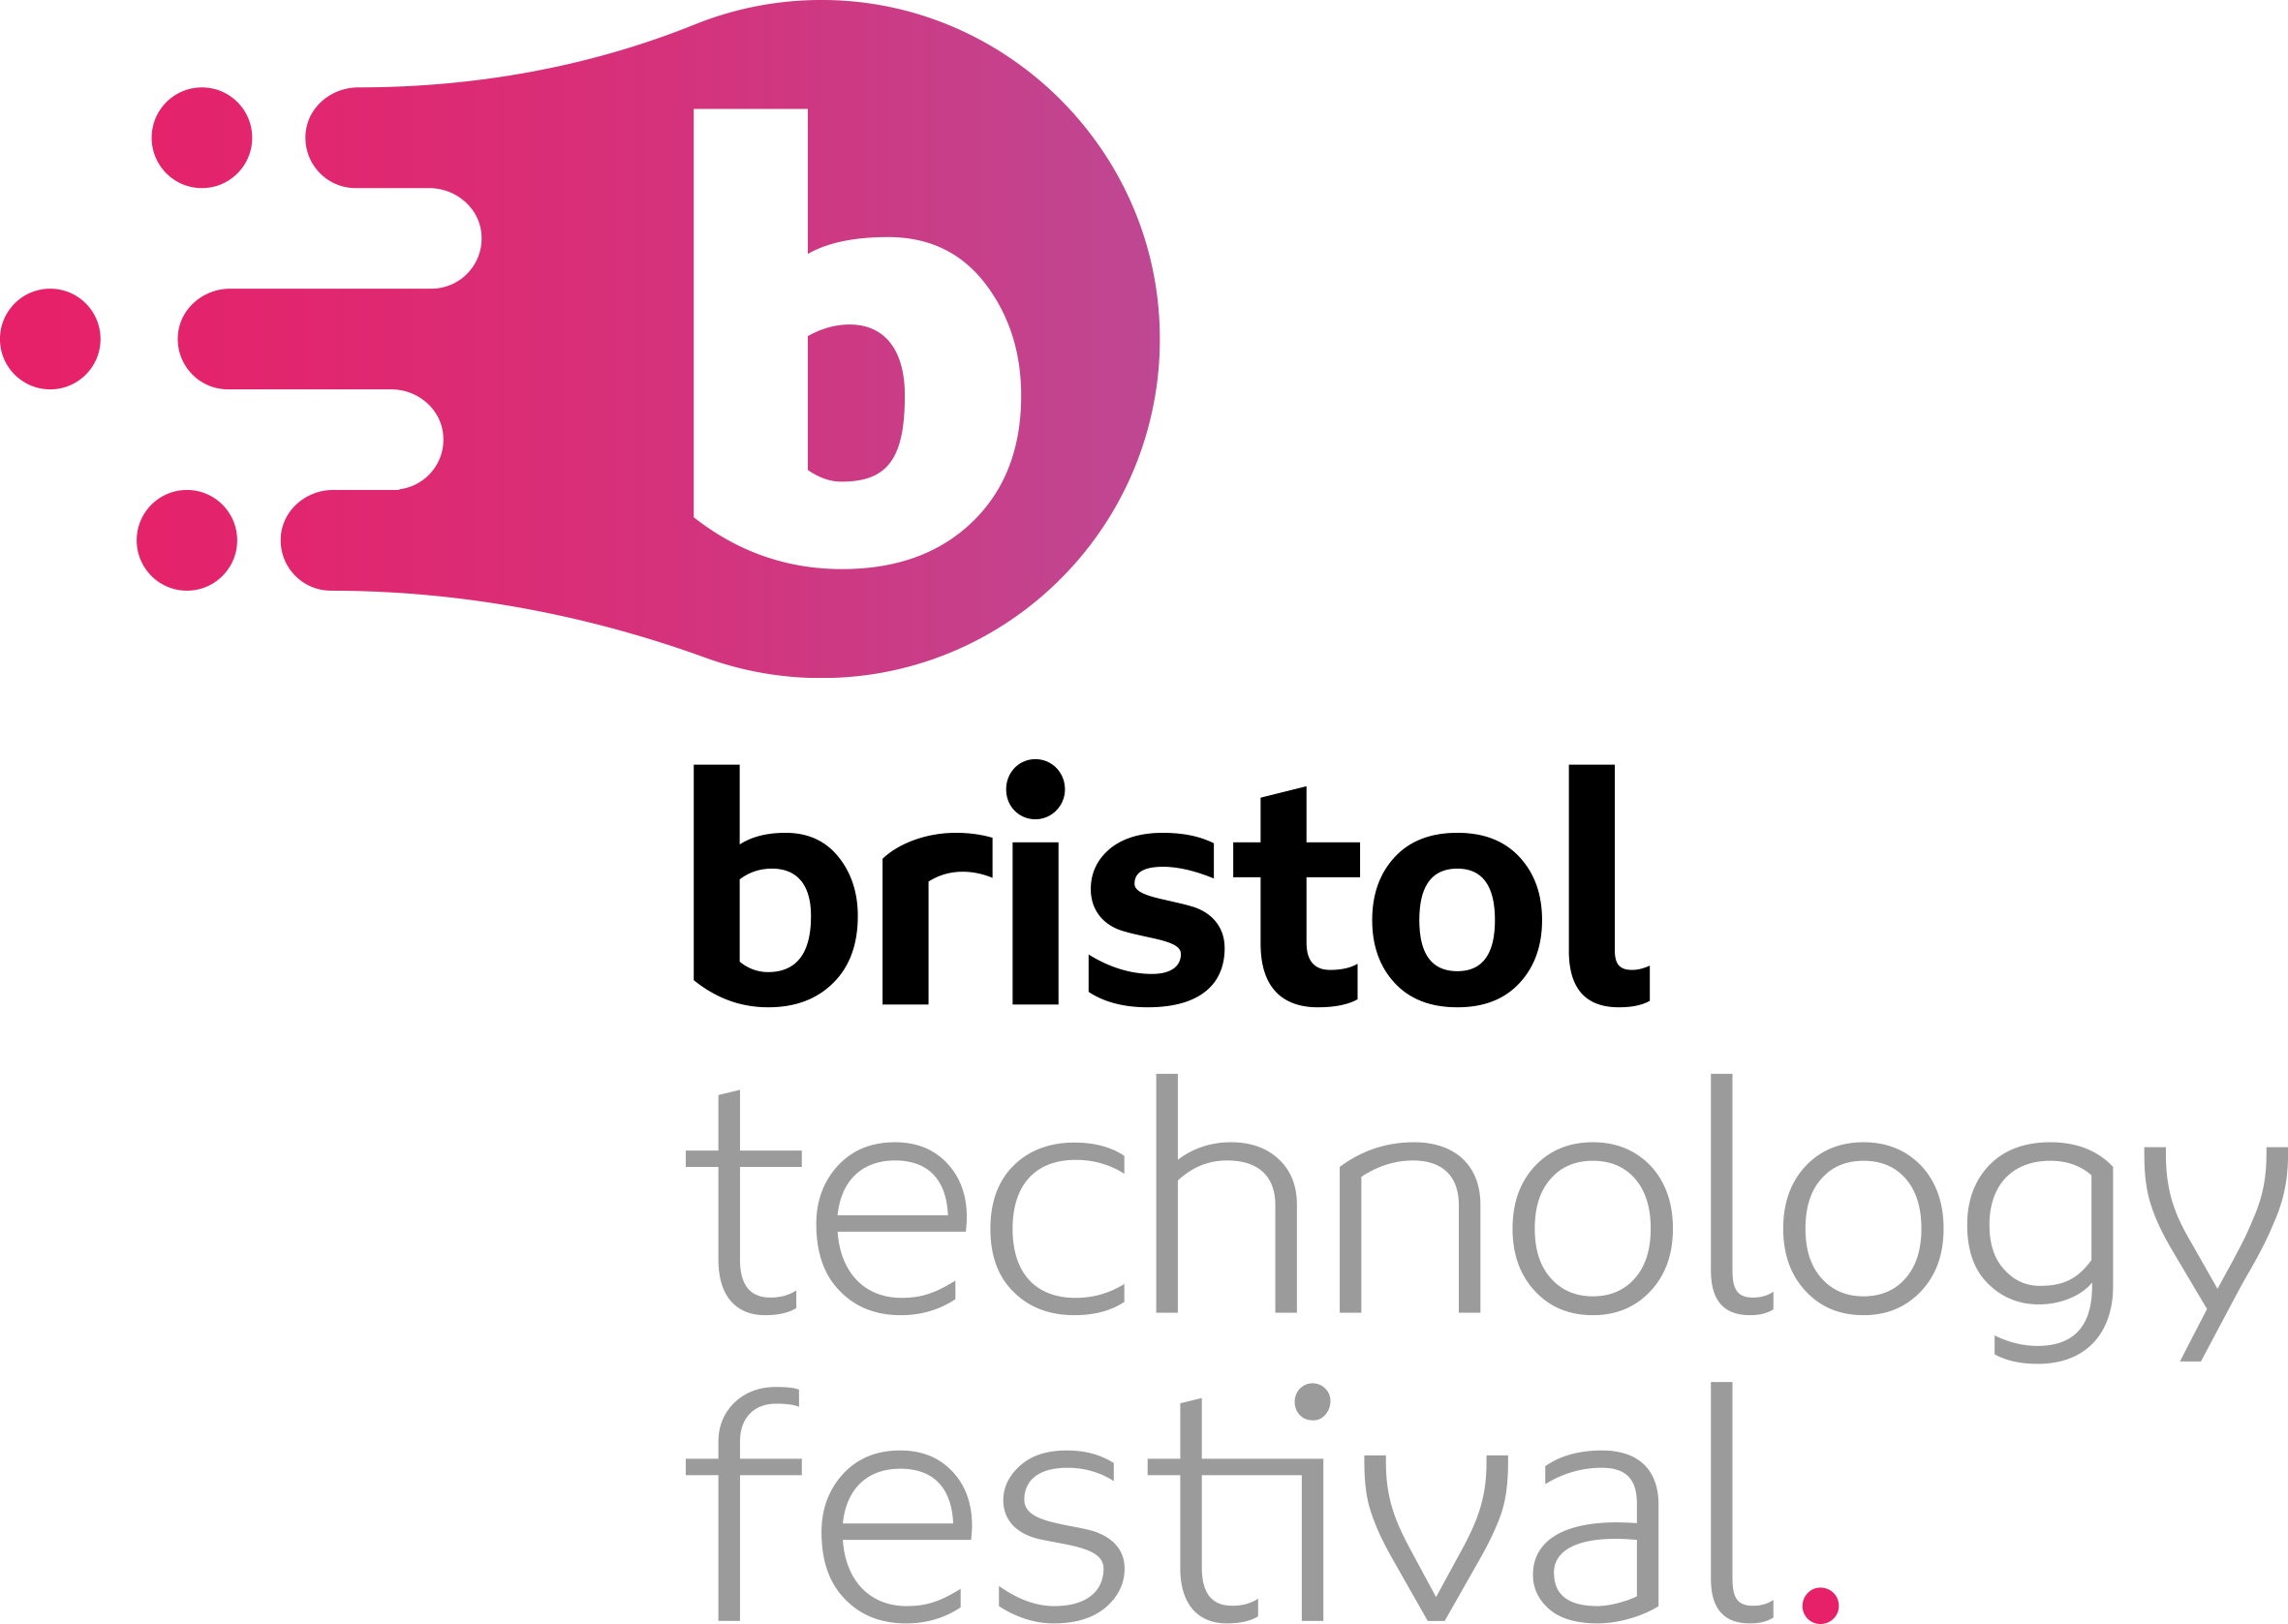 Bristol Technology Festival RGB.png